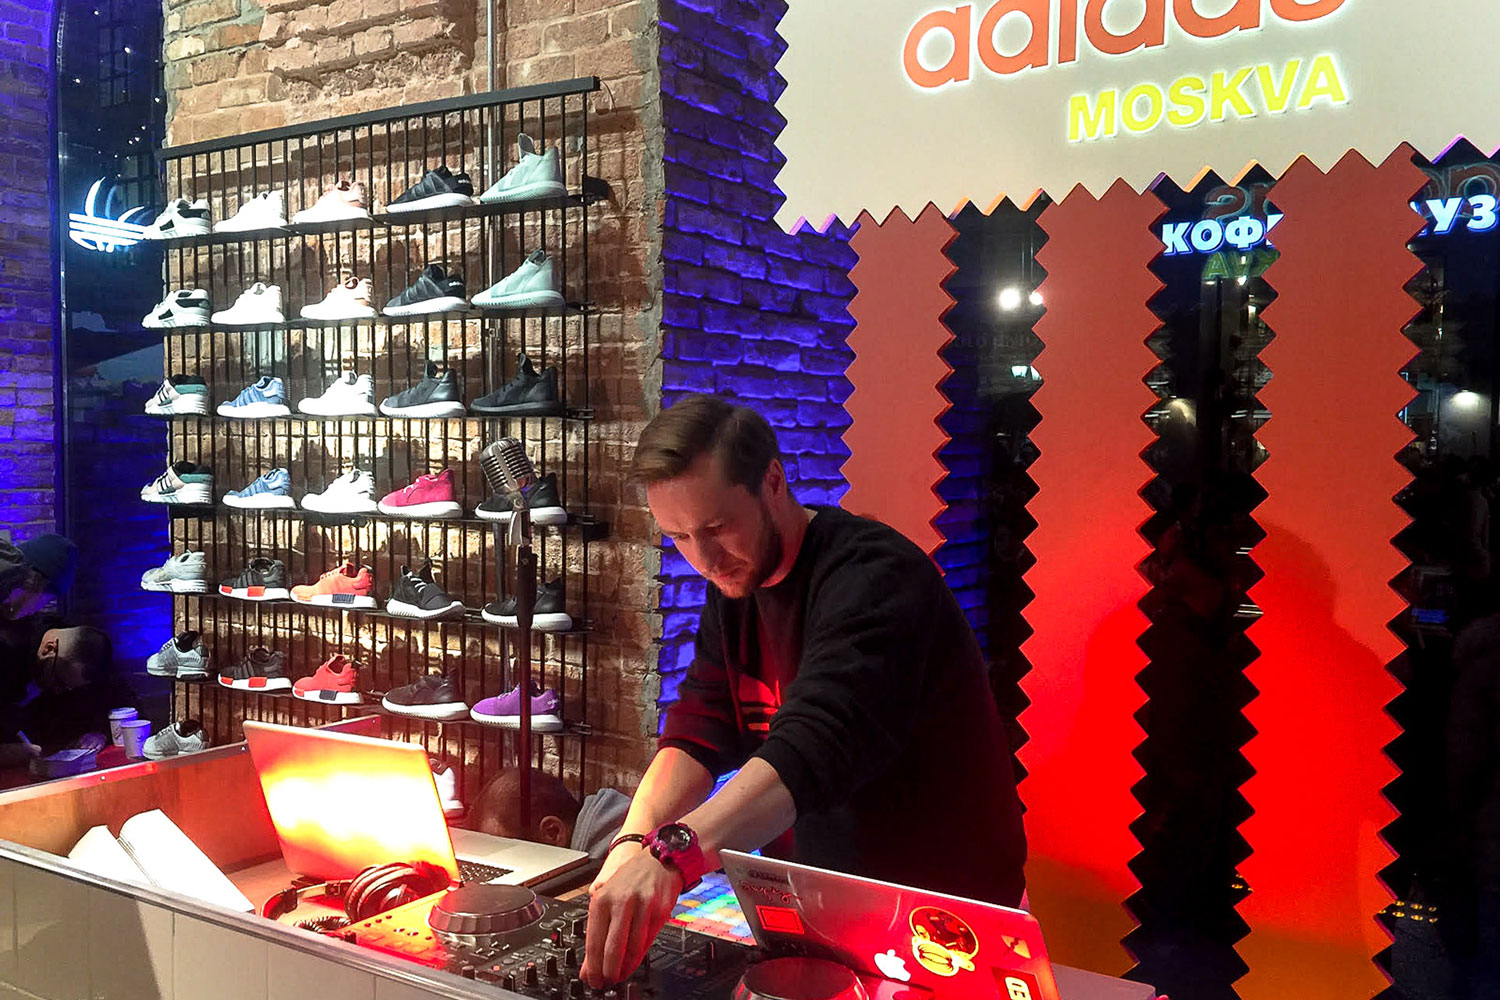 adidas-moscow